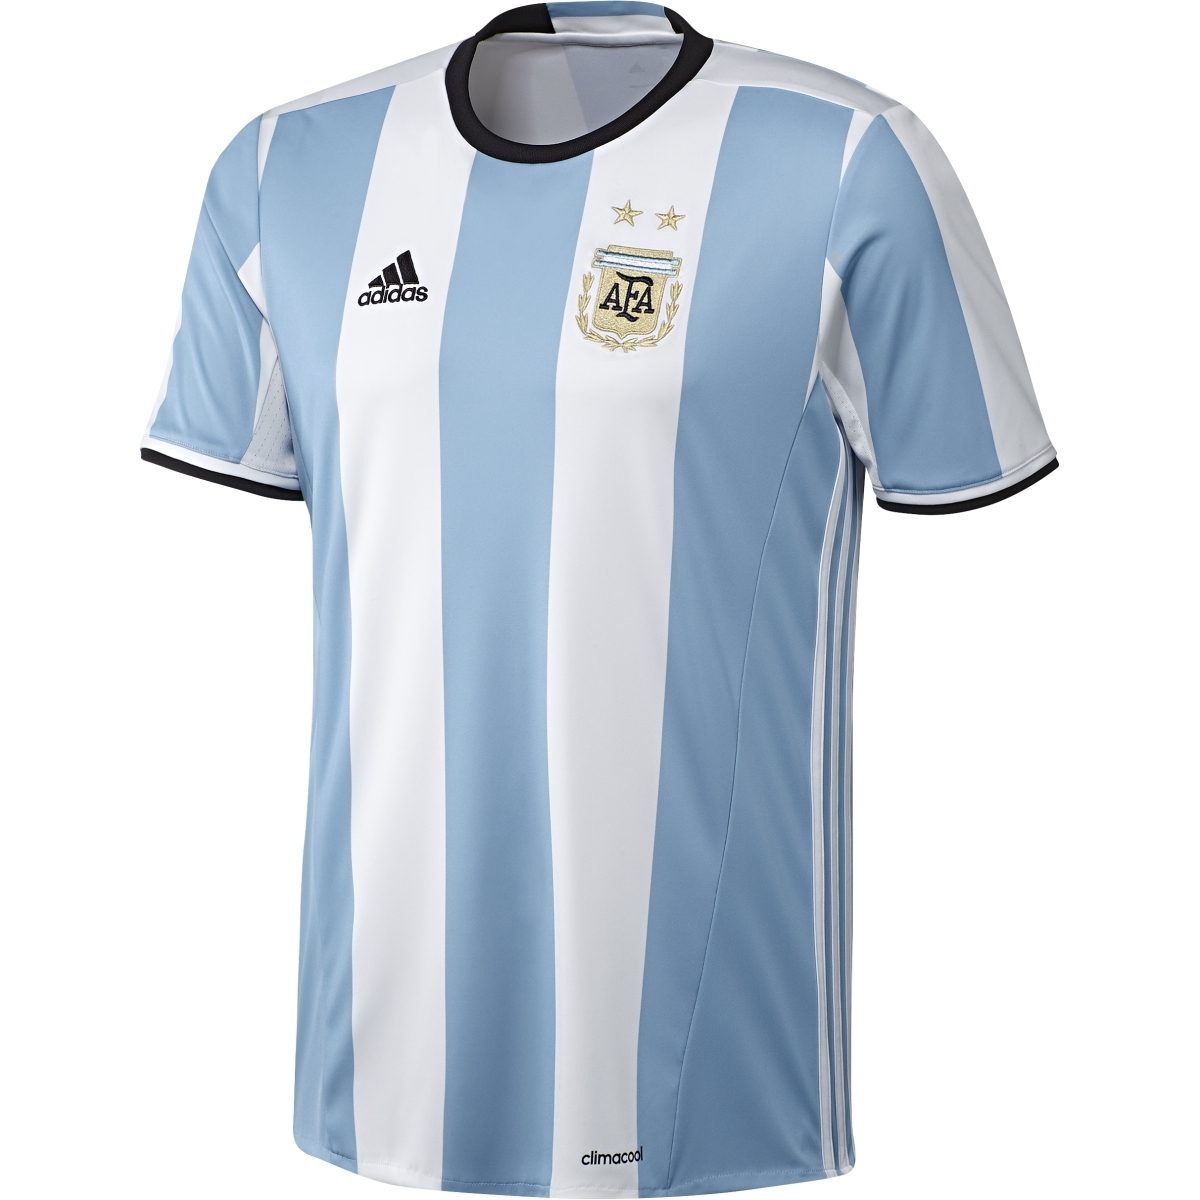 Adidas Youth Argentina Home 2016 Replica Soccer Jersey ... - photo#21